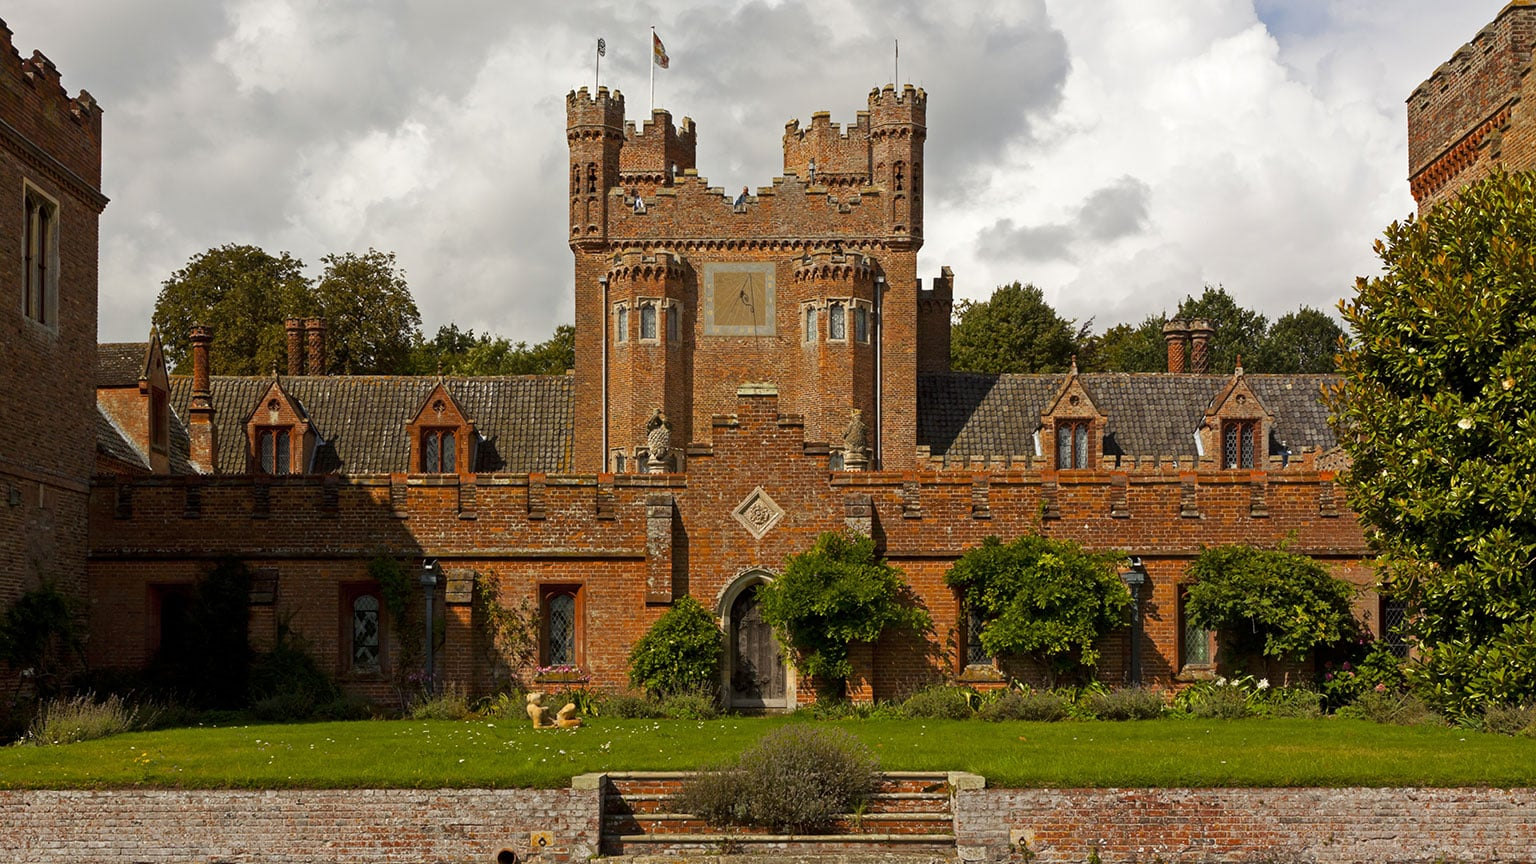 The Tiny House Company Oxburgh Hall Art Fund